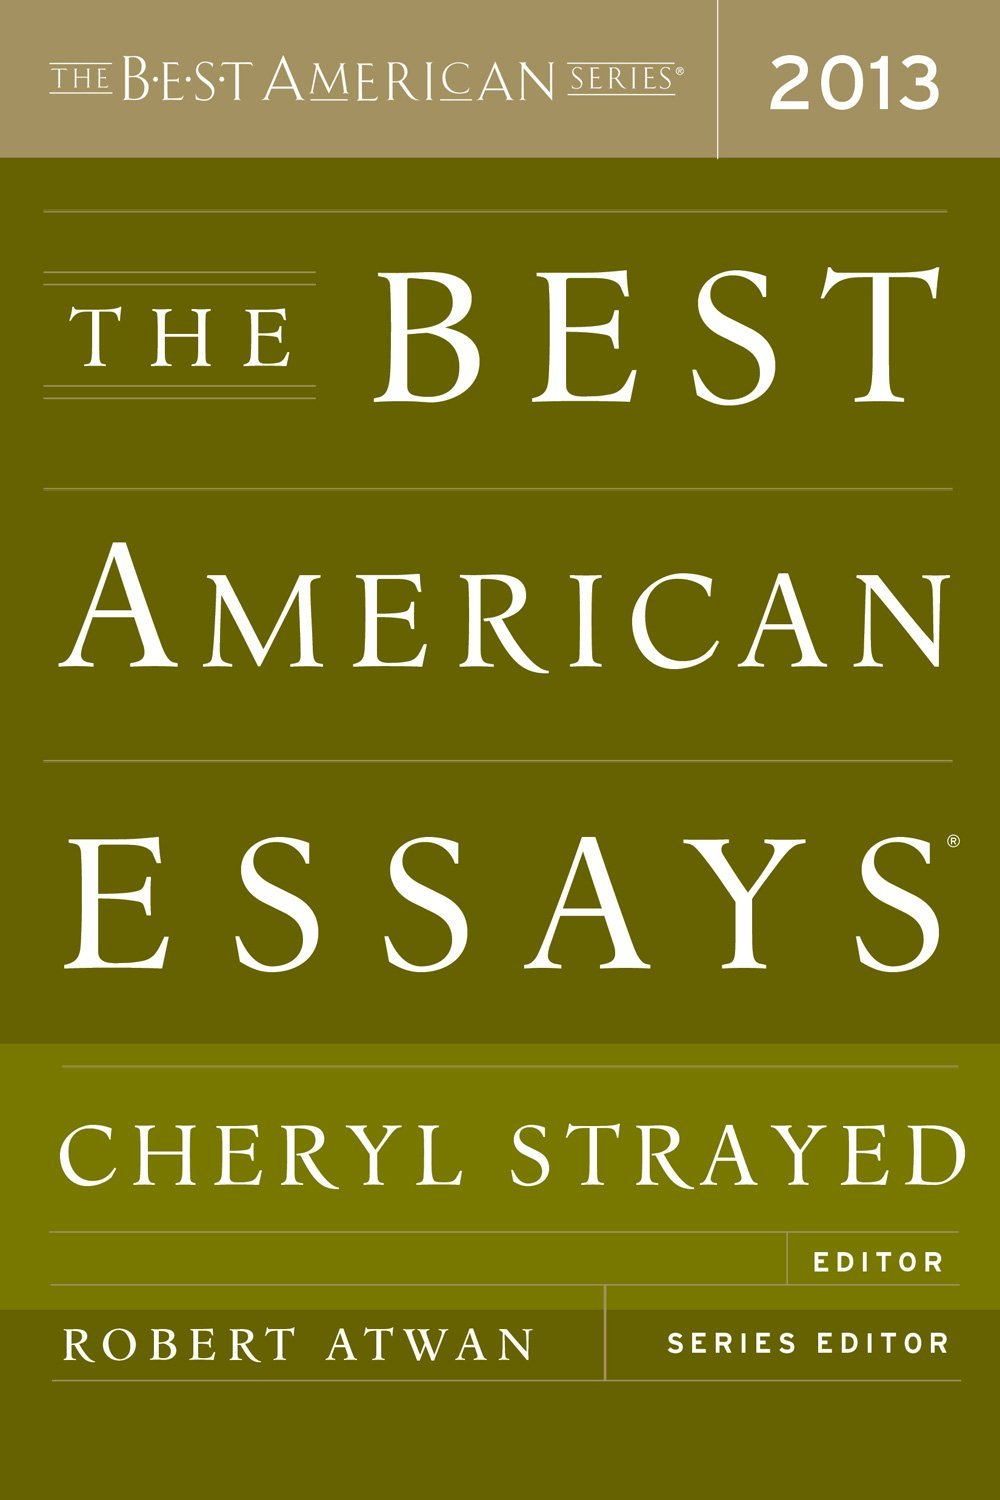 Notable Essay in The Best American Essays 2013 | brandon r. schrand